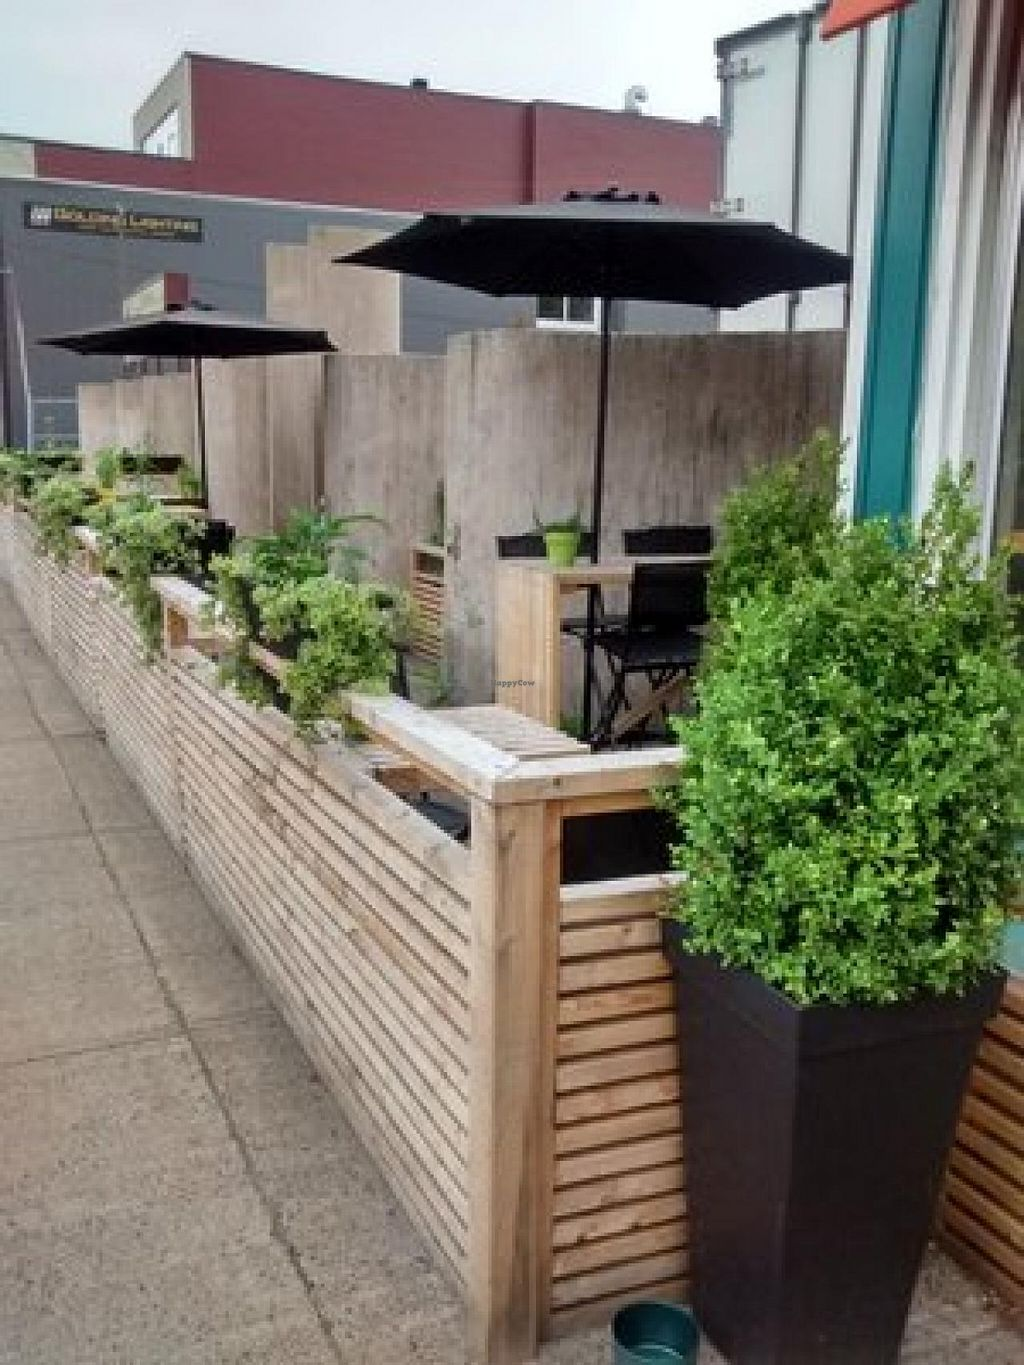 """Photo of Heartwood Bakery & Cafe - Quinpool Rd  by <a href=""""/members/profile/QuothTheRaven"""">QuothTheRaven</a> <br/>Patio <br/> July 24, 2015  - <a href='/contact/abuse/image/1294/110813'>Report</a>"""